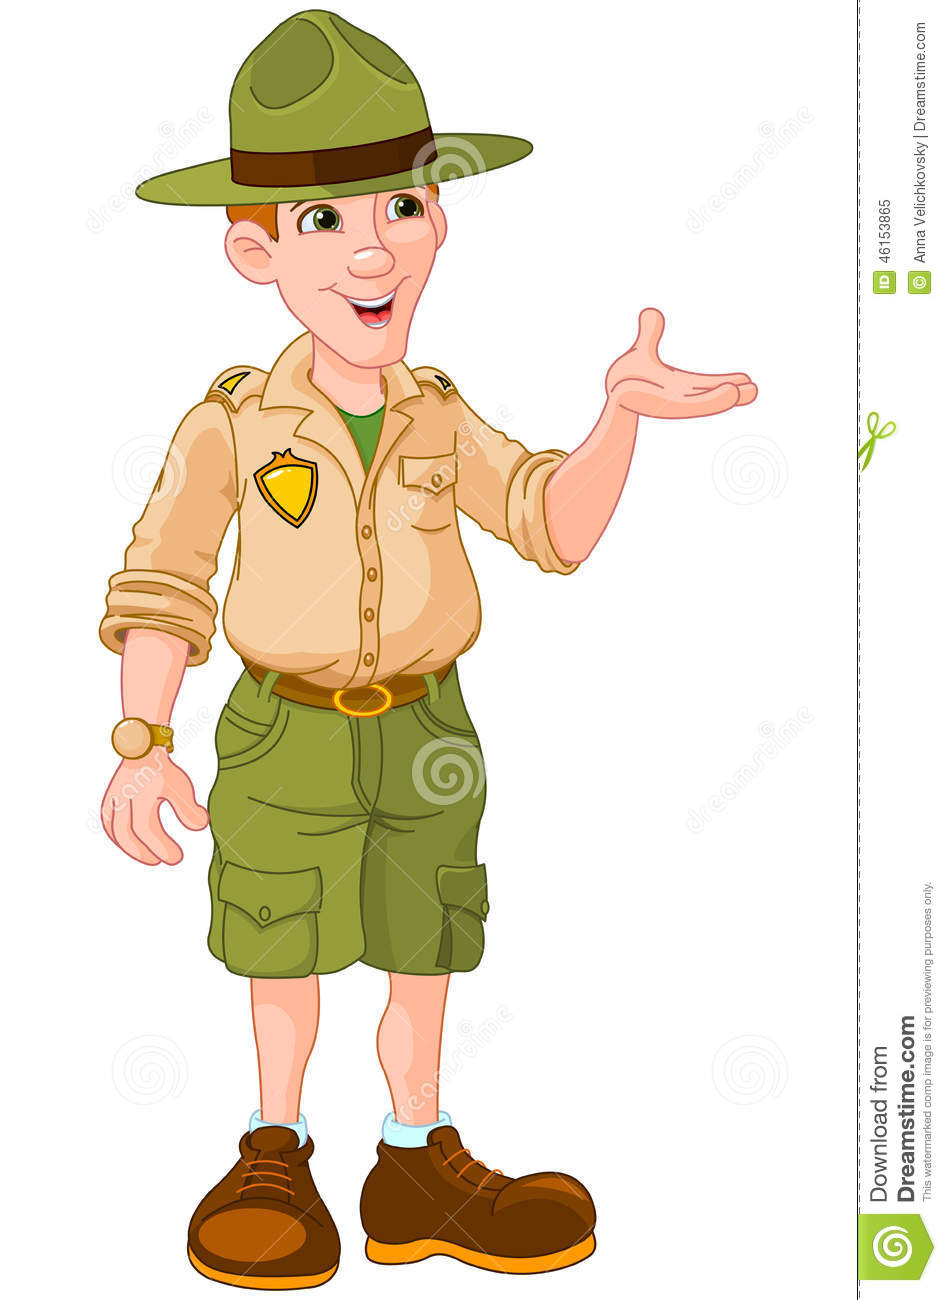 Uniform Park Costume Ranger